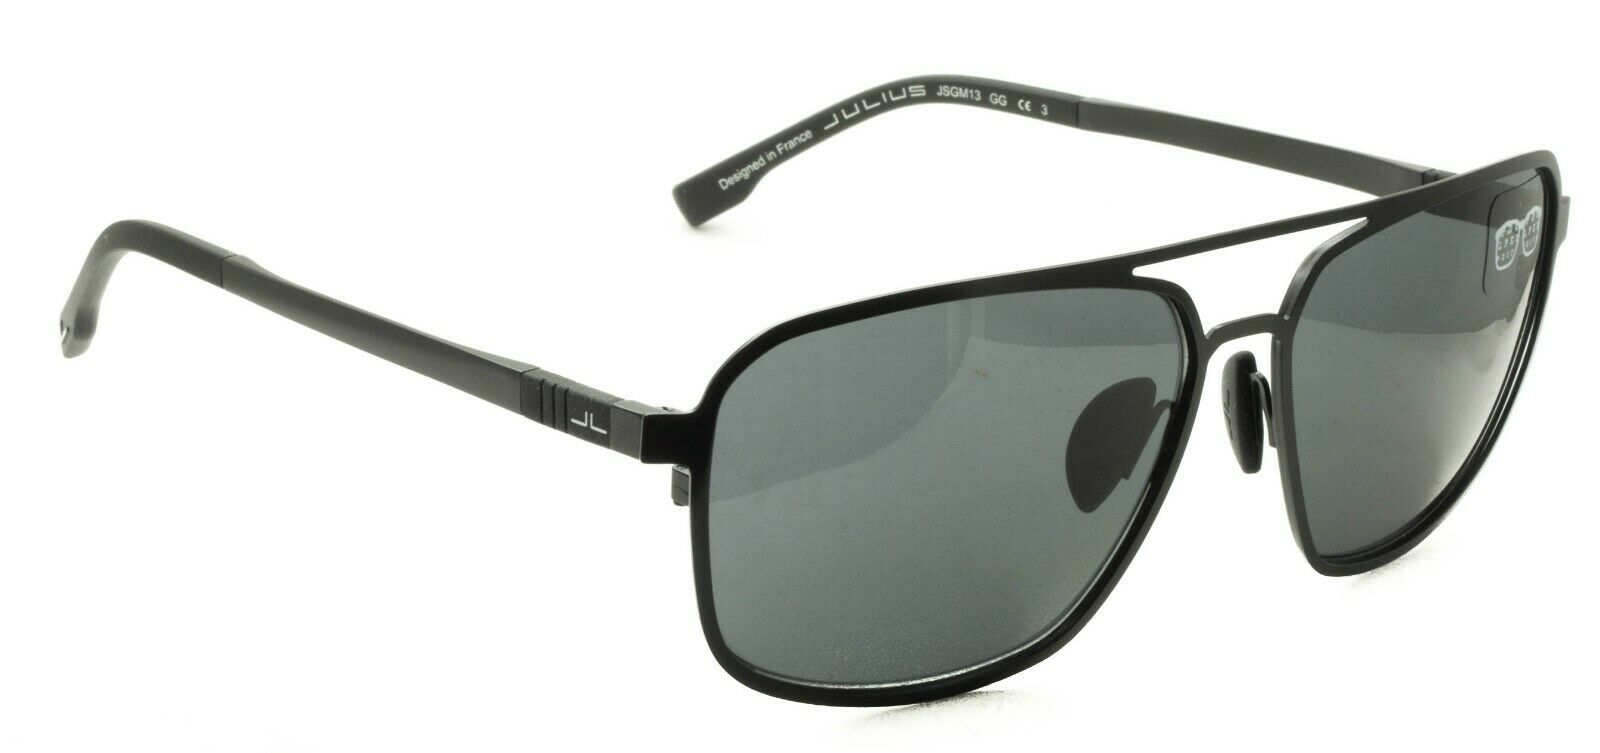 JULIUS JSGM13 GG 60mm Sunglasses Shades Eyeglasses Frames Glasses New - TRUSTED